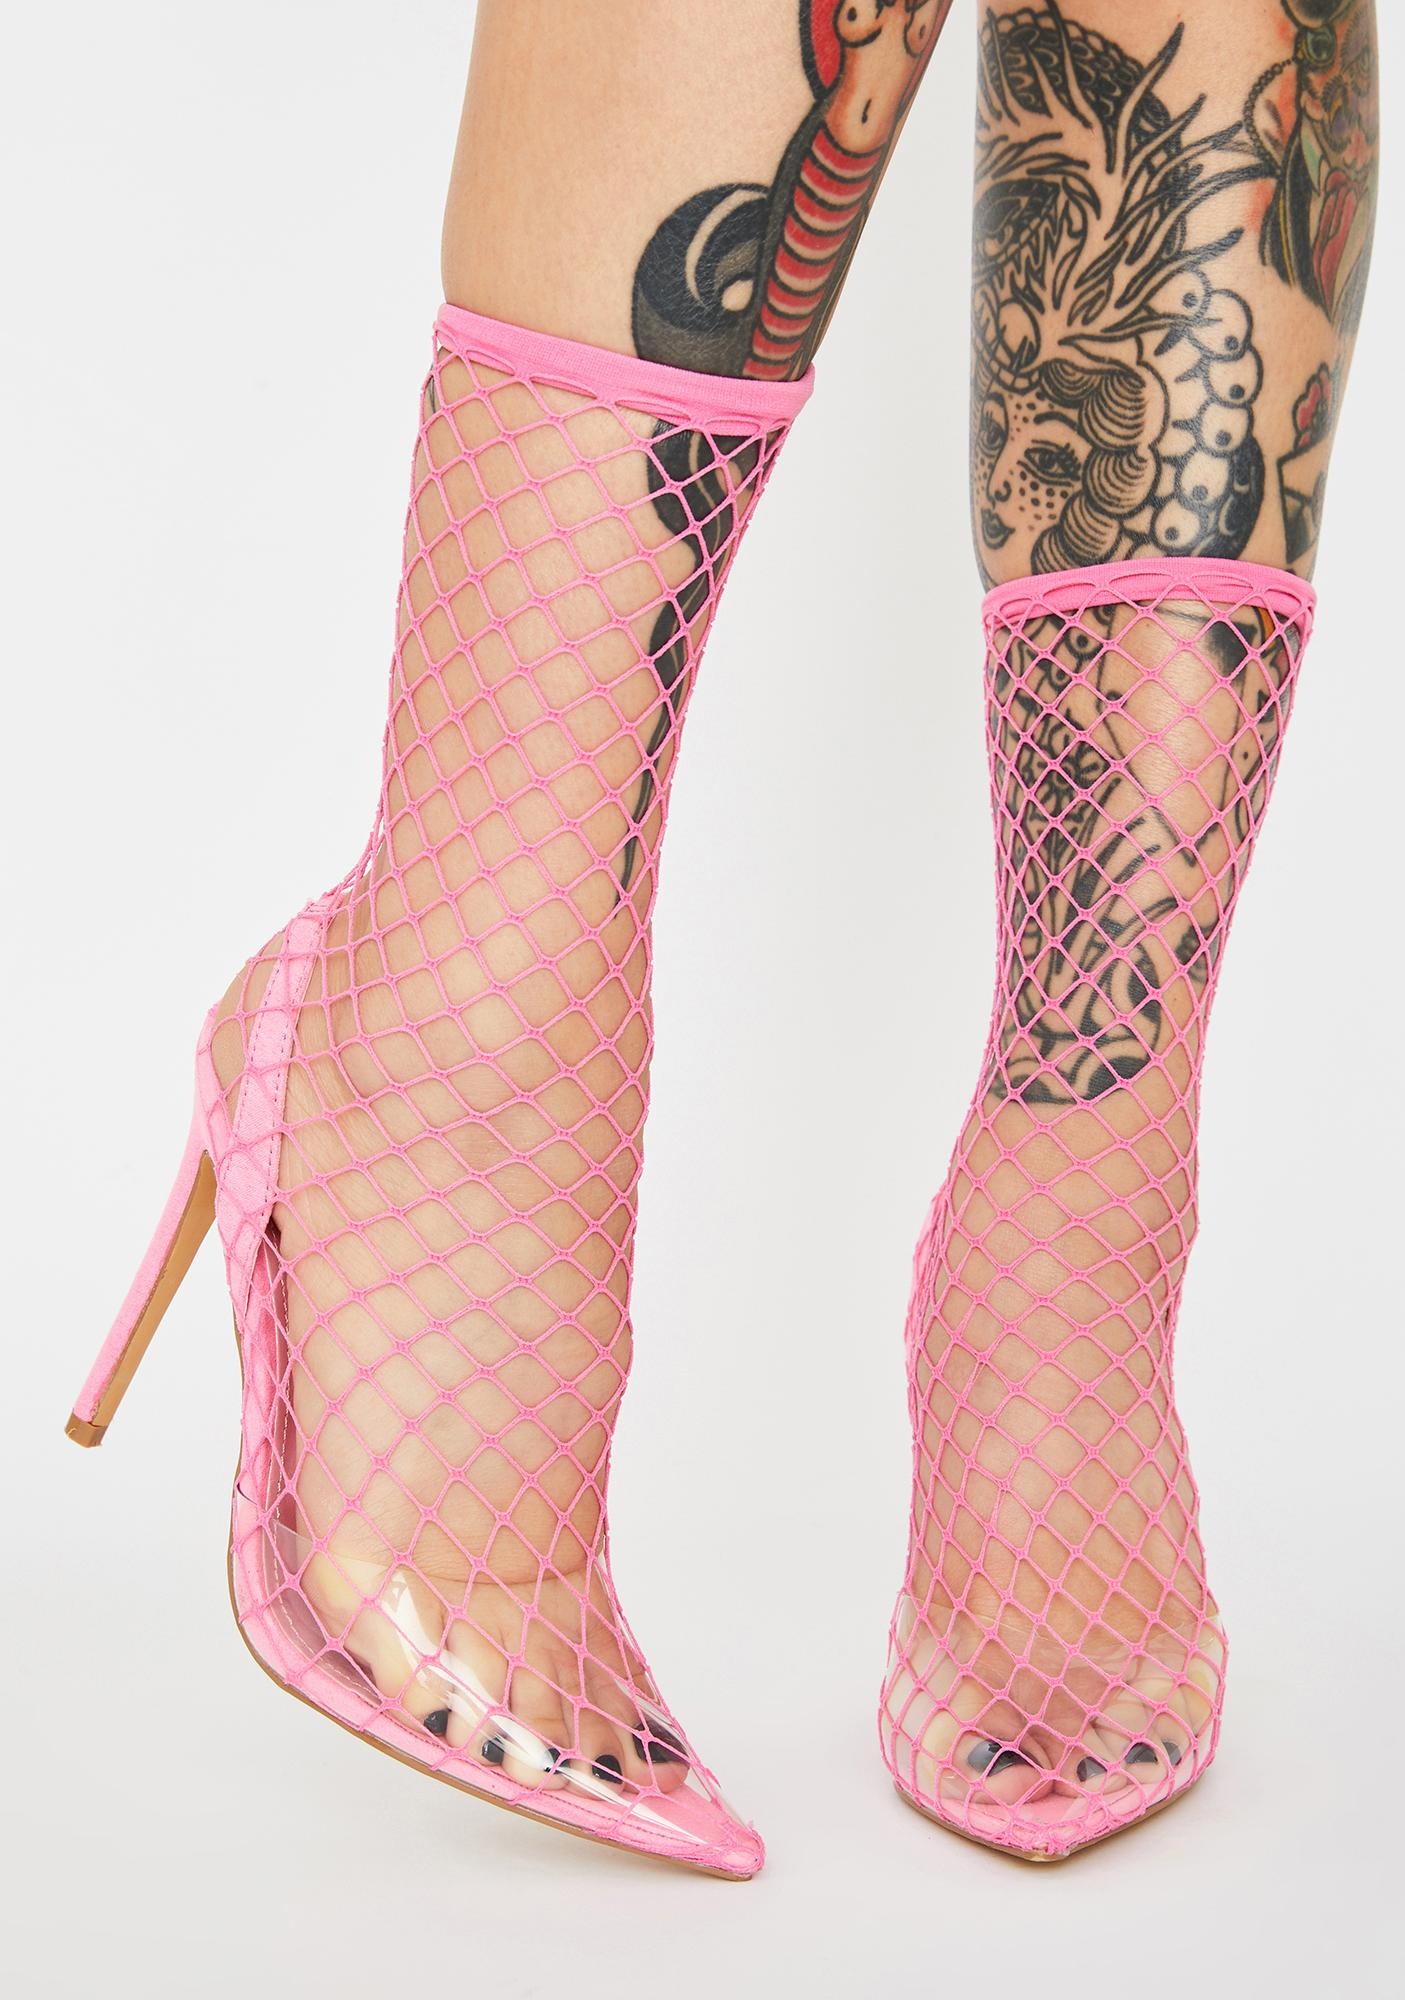 Cupcake The Hott Friend Fishnet Heels